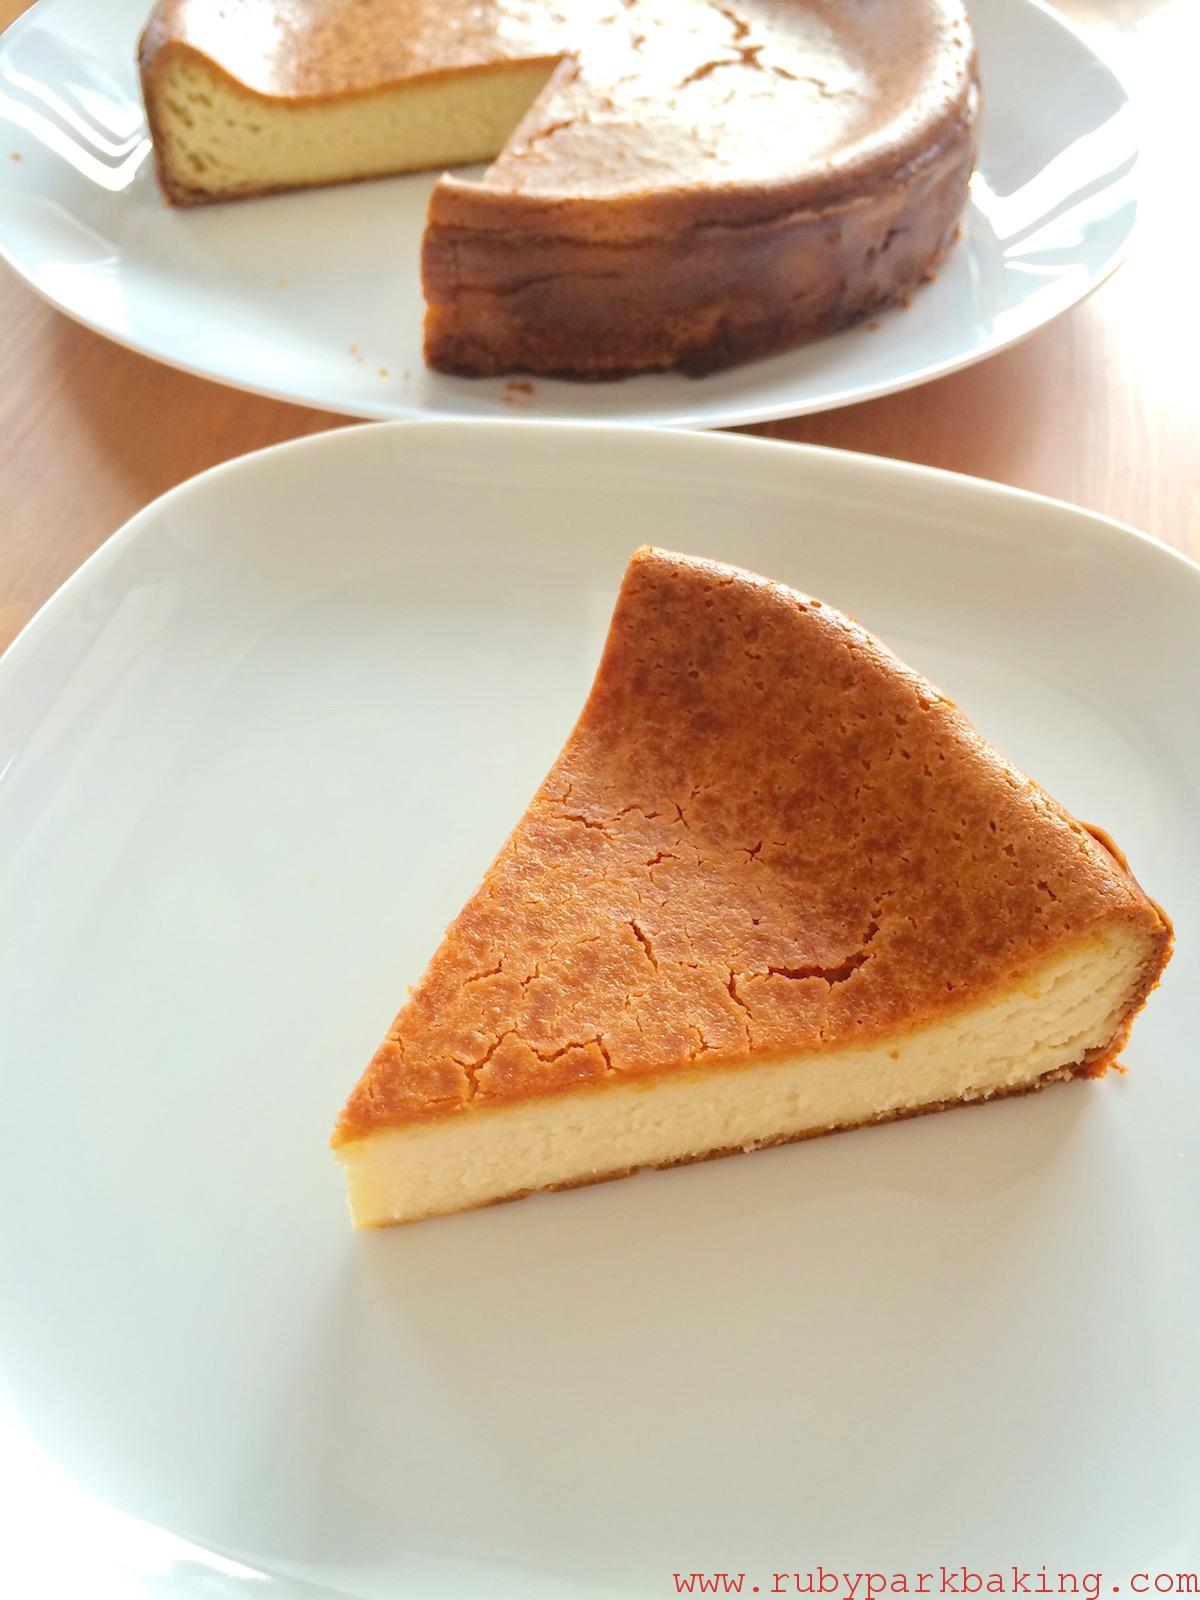 Maple baked cheesecake on rubyparkbaking.com